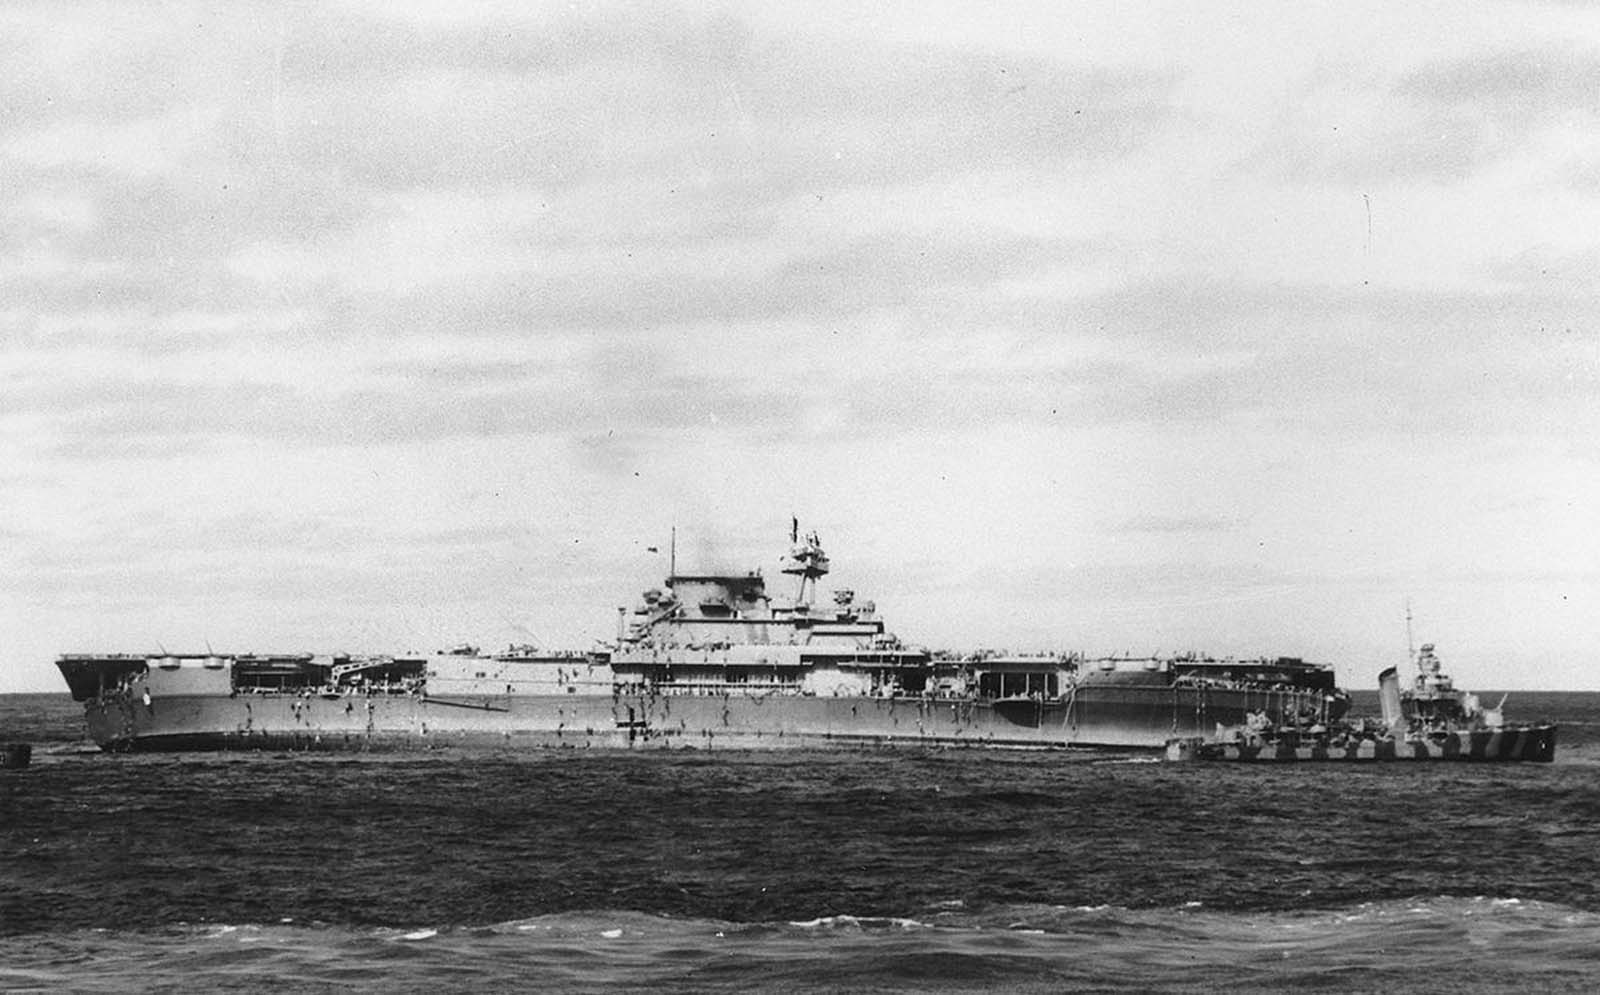 After Japanese bombers damaged the USS Yorktown, crewmen climb down ropes and ladders to small boats that transferred them to rescue ships, including the destroyer at right, on June 4, 1942 in the Pacific Ocean. Later, a salvage crew returned to the abandoned ship and as she made progress toward port, a torpedo from a Japanese submarine destroyed and sank the Yorktown.